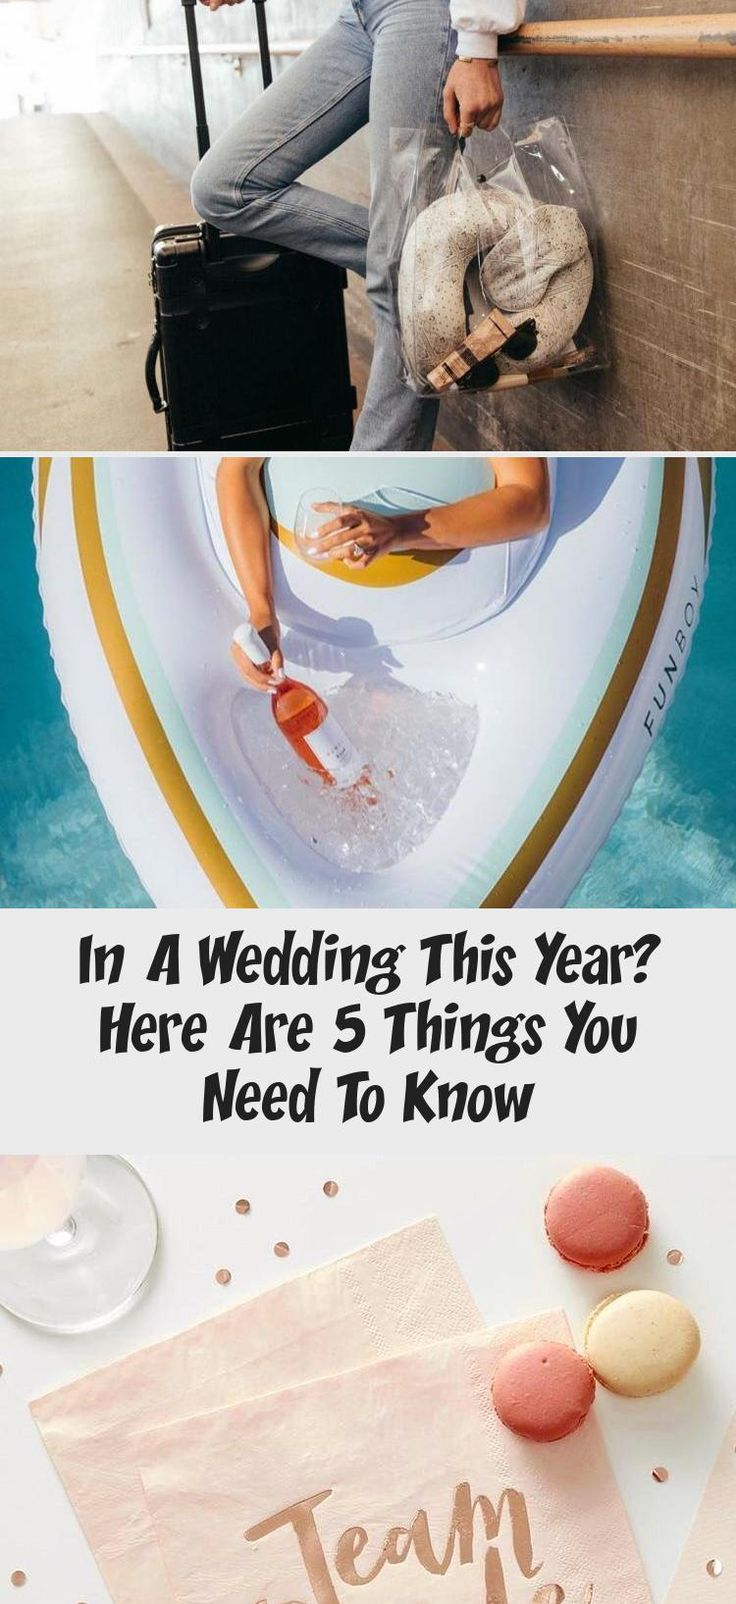 In a Wedding This Year? Here Are 5 Things You Need to Know | The Everygirl #BridesmaidDressesPlusSize #TanBridesmaidDresses #LavenderBridesmaidDresses #BridesmaidDressesMismatched #OffTheShoulderBridesmaidDresses